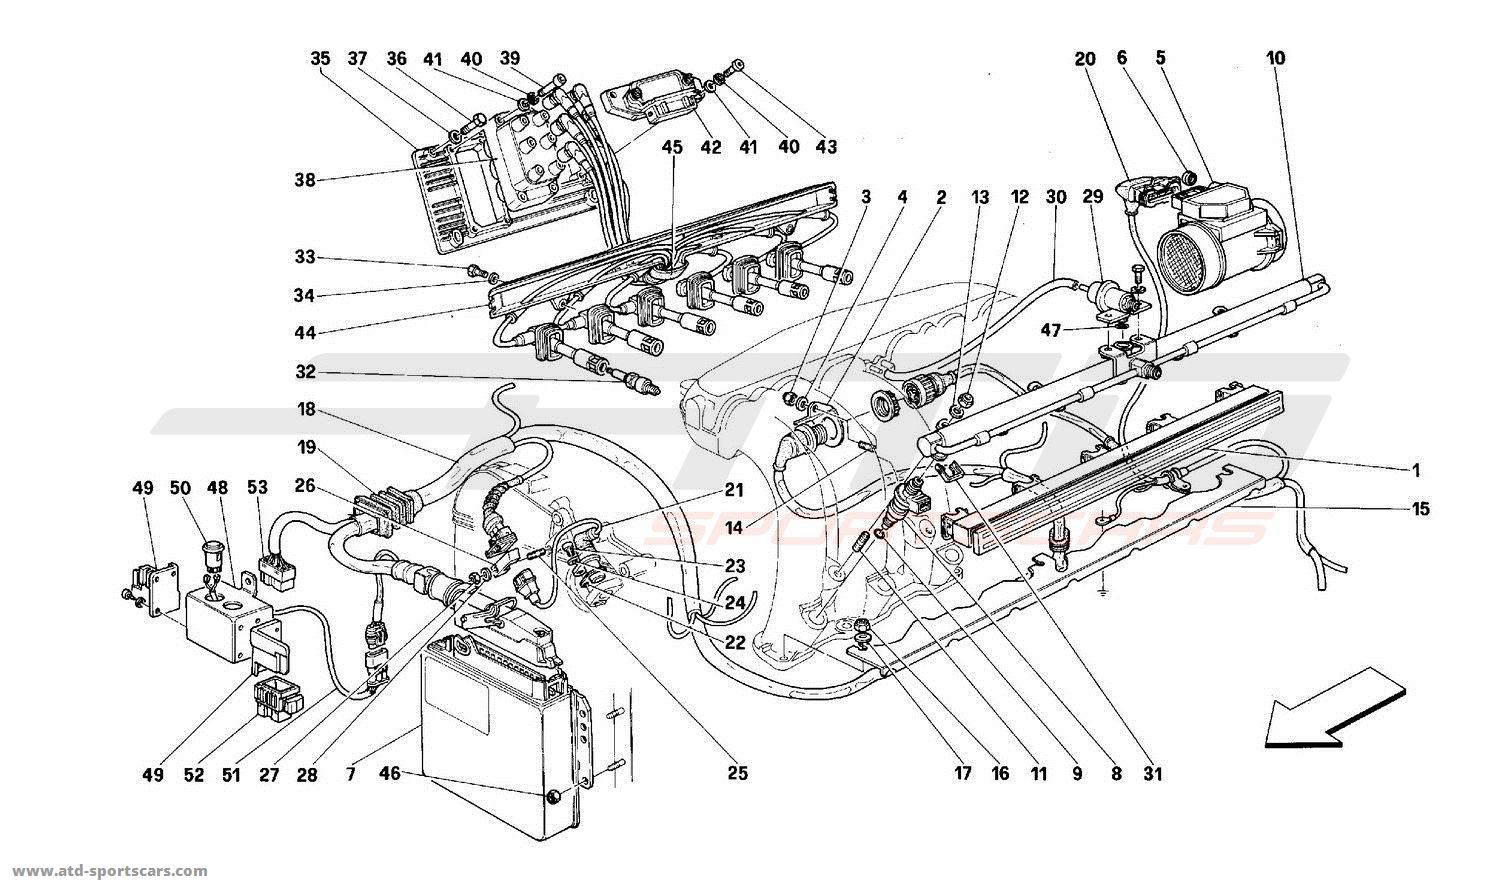 Ferrari 512m Engine Parts At Atd Sportscars